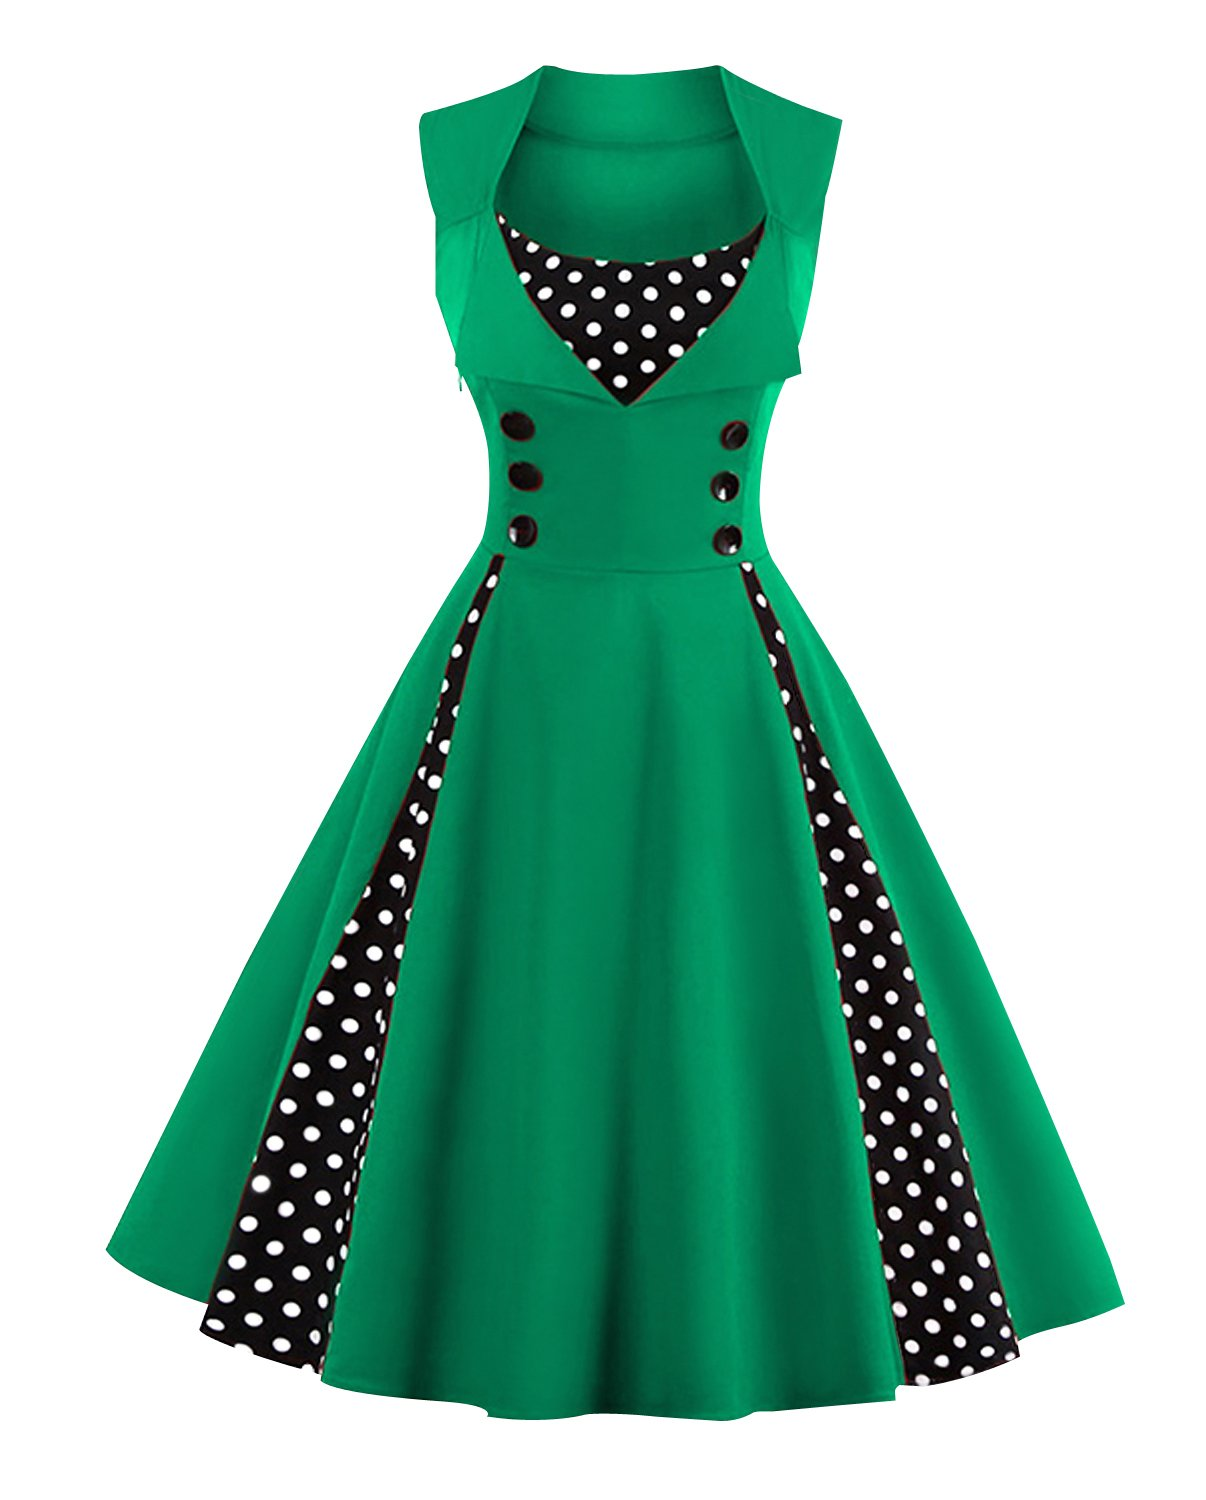 Killreal Women's Rockabilly A-Line Polka Dot Print Cocktail Vintage 50s Style Party Dress Green XX-Large